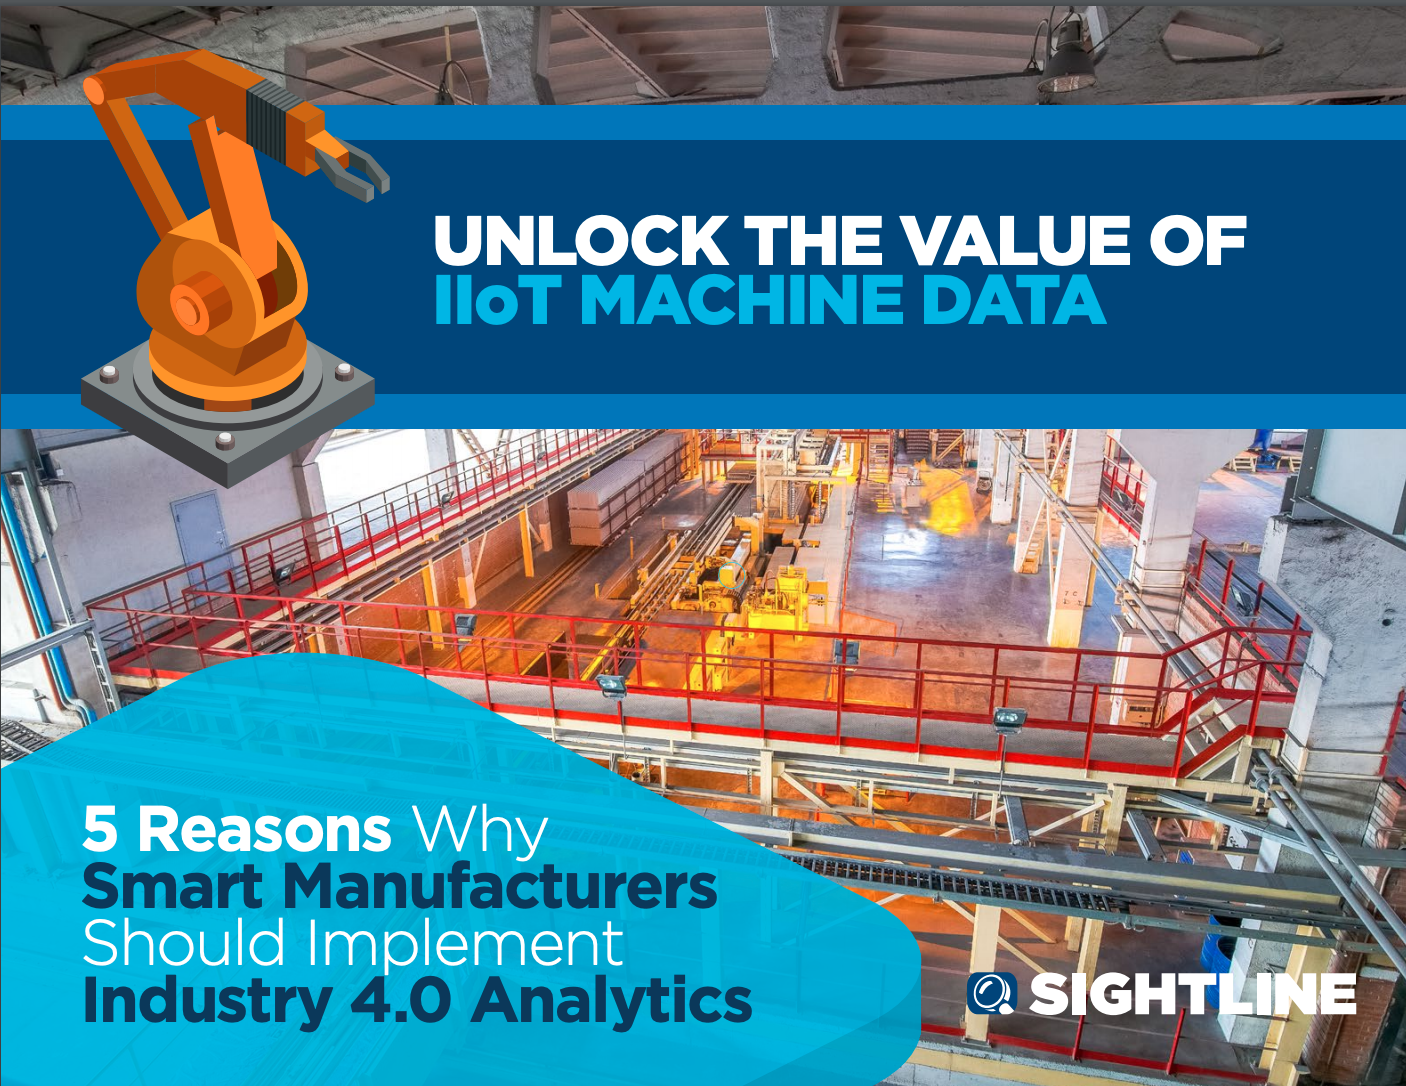 5 Reasons Why Smart Manufacturers Should Implement Industry 4.0 Analytics